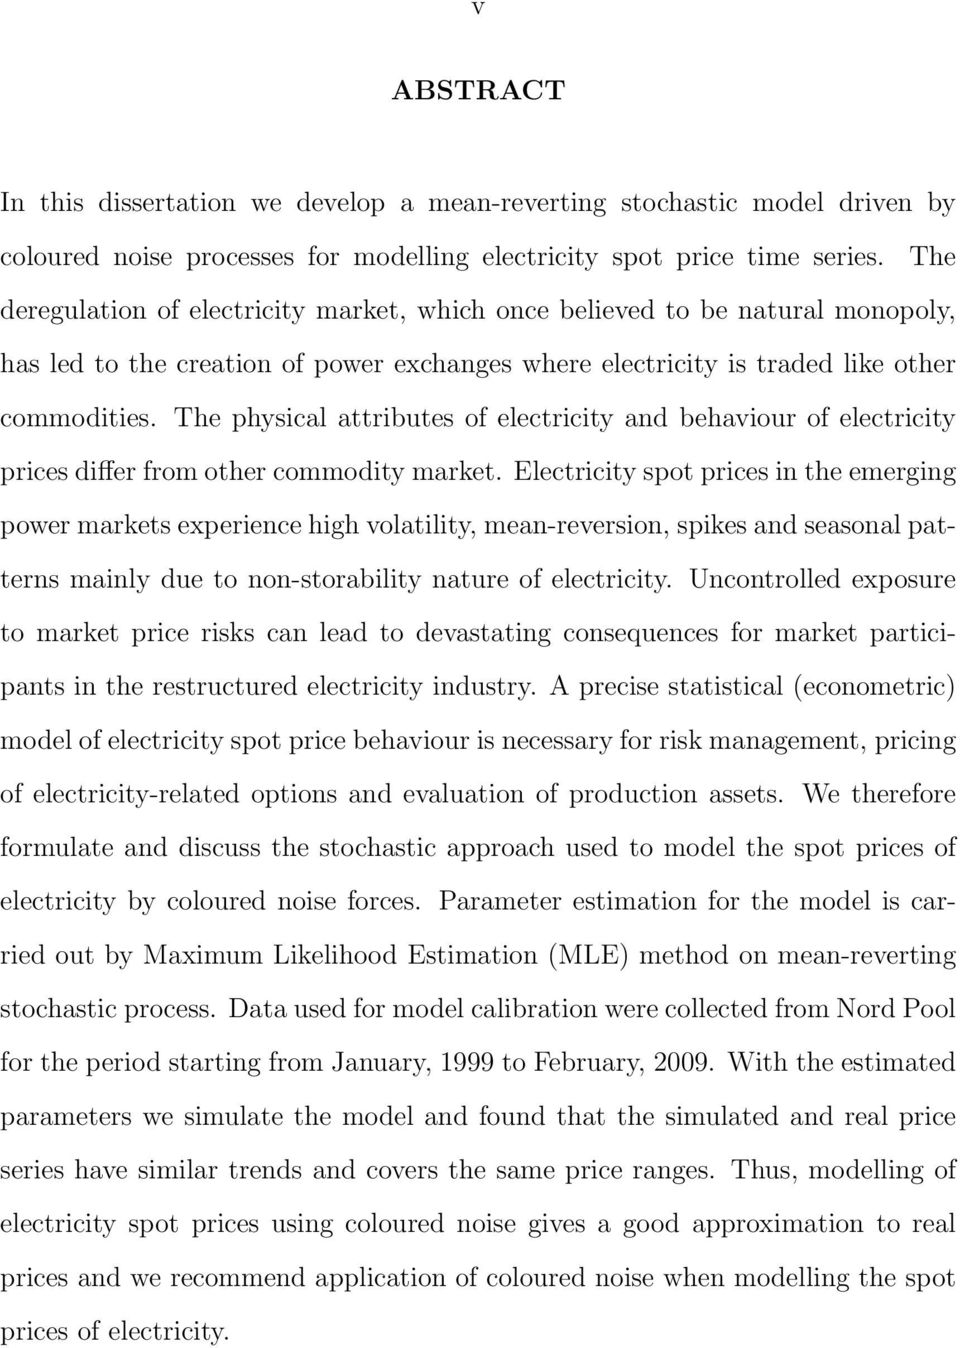 The physical attributes of electricity and behaviour of electricity prices differ from other commodity market.